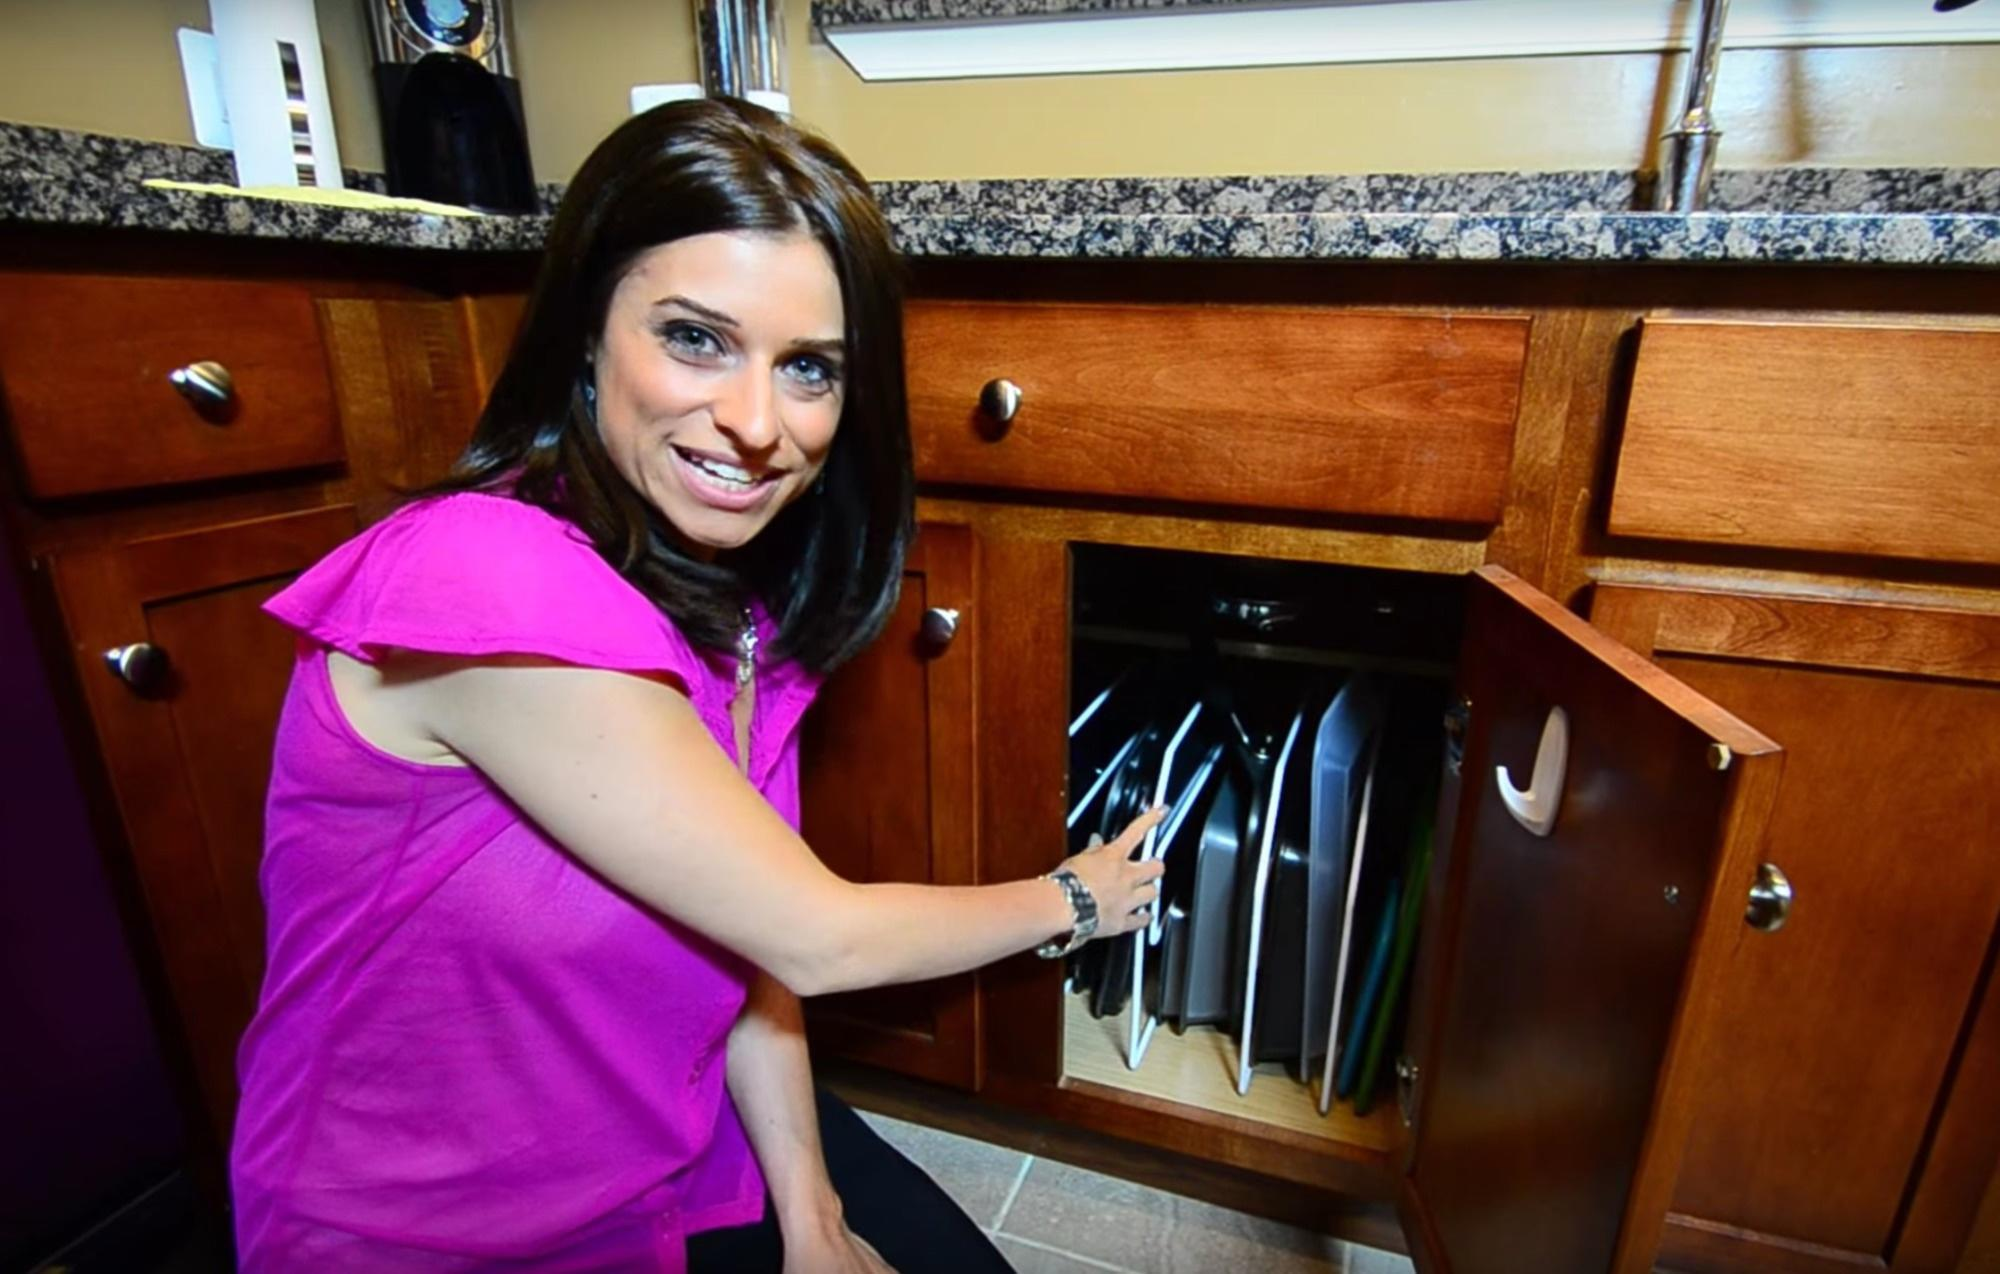 The idea is to bring helpful, easy tips to people who'd like to have a home as organized as hers.